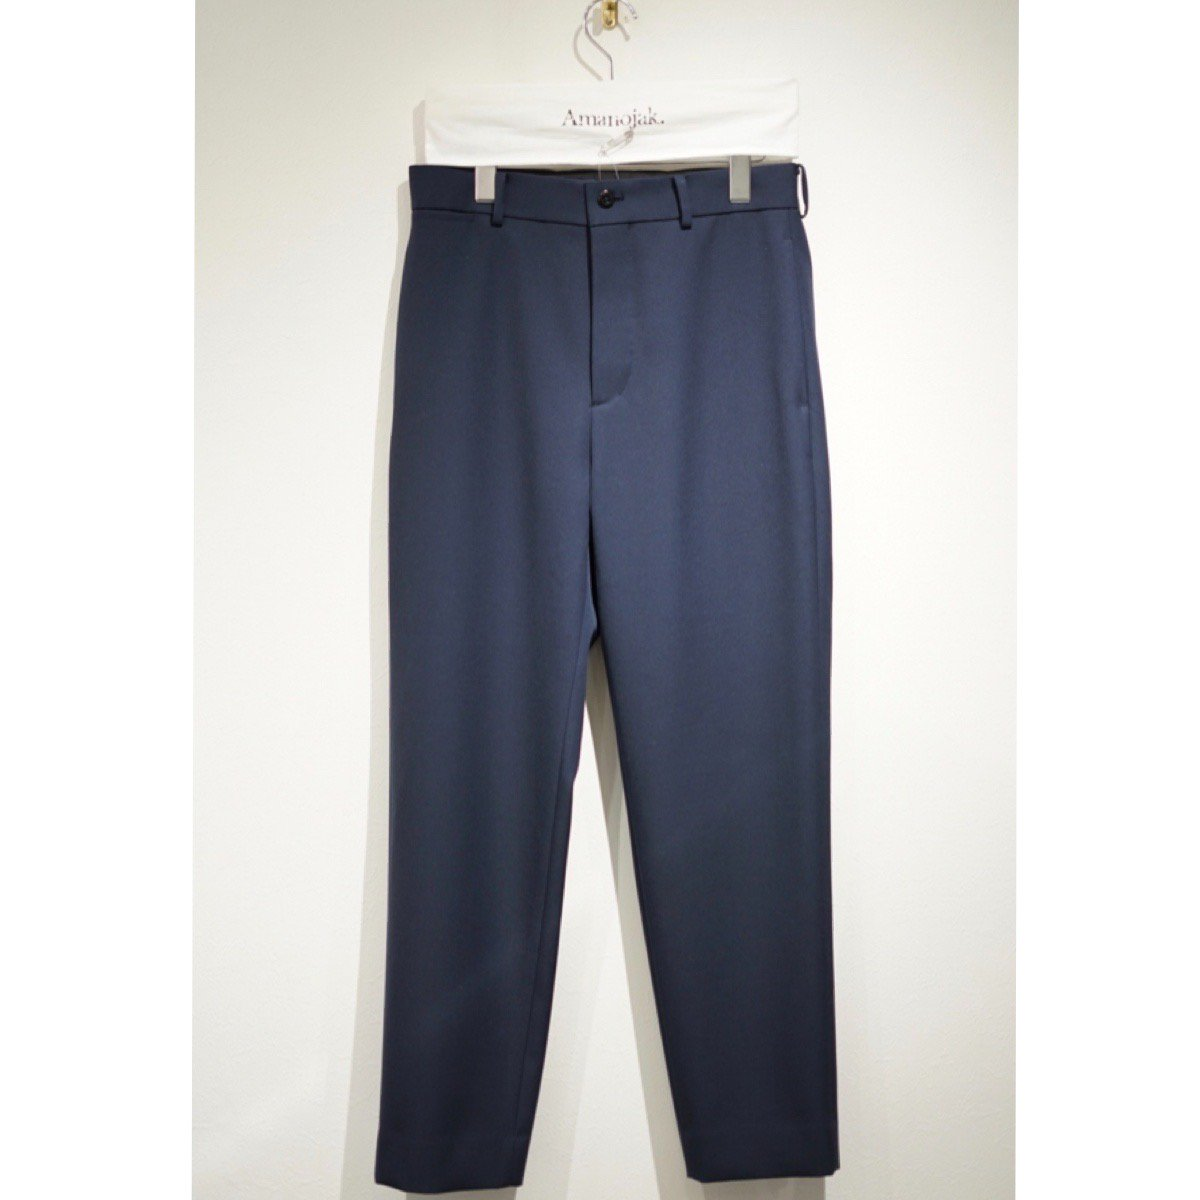 ATON-BACK SATIN BASIC PANTS NAVY